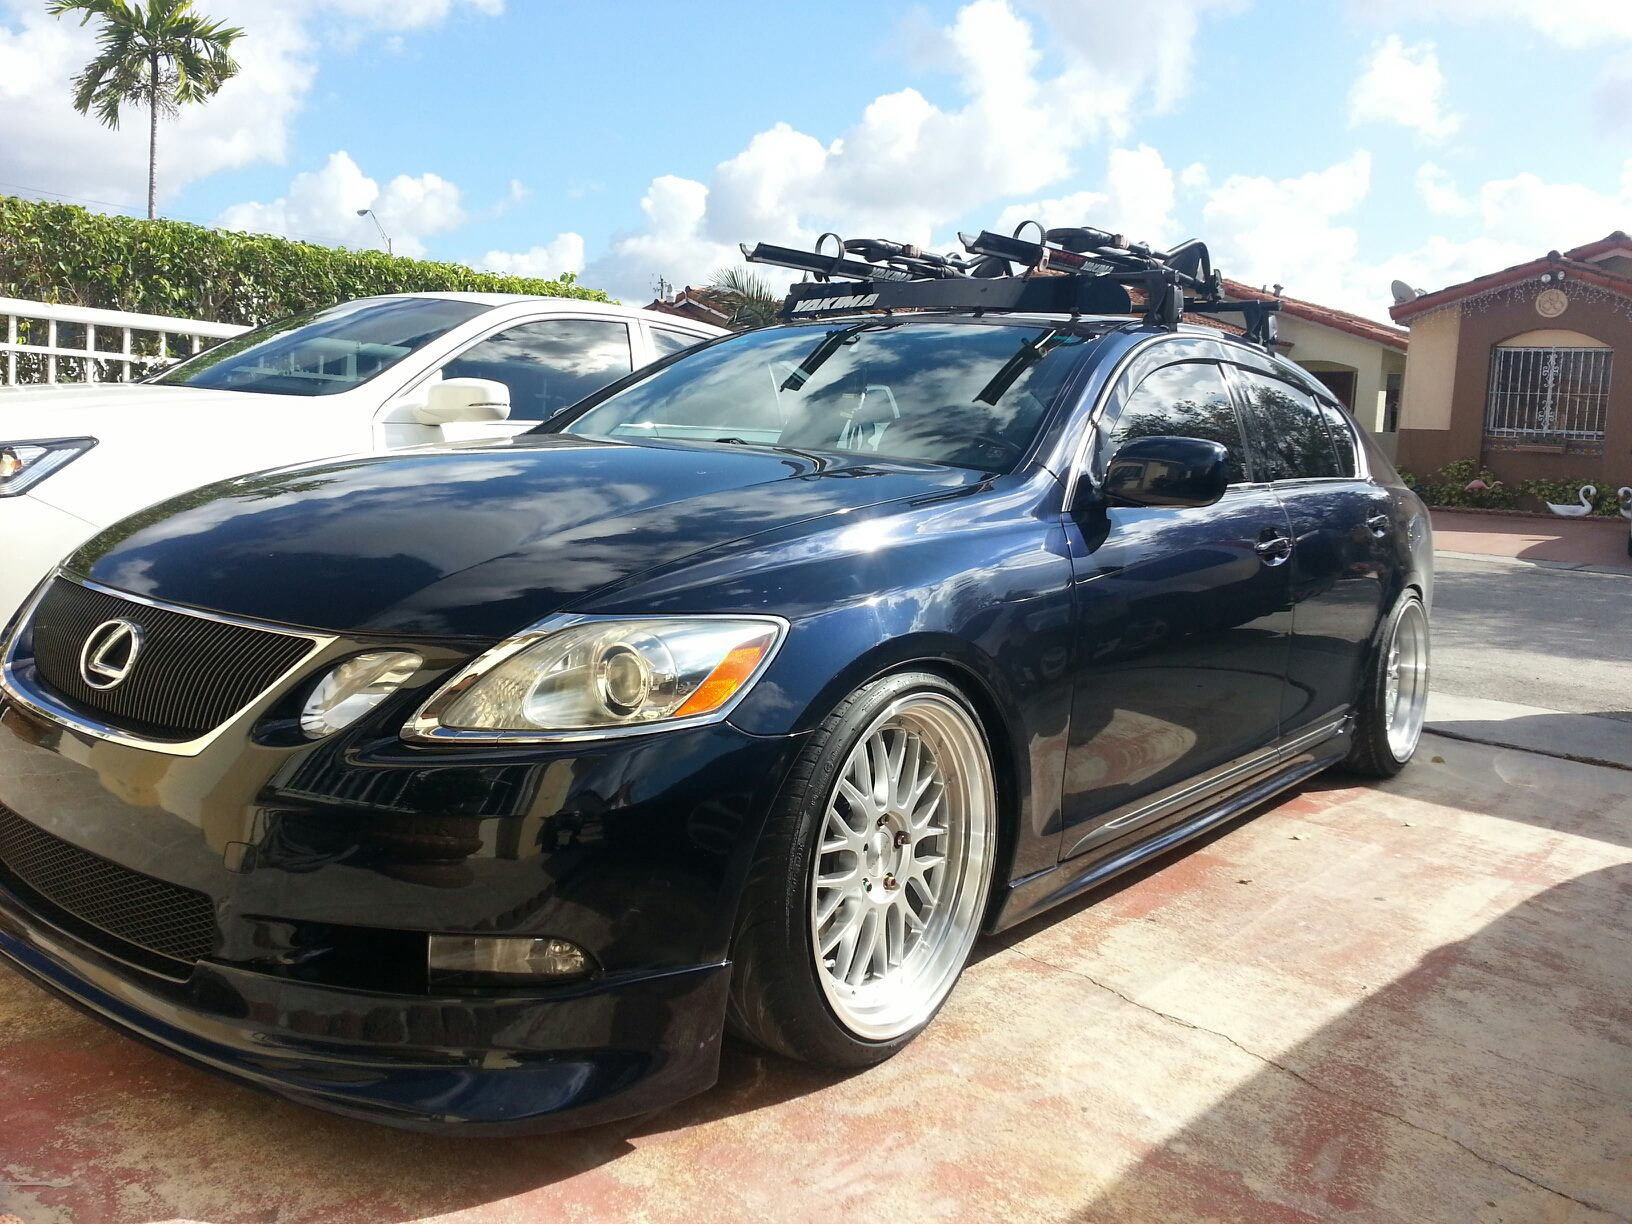 lexus gs 300 custom wheels varrstoen es1 19x9 5 et 22. Black Bedroom Furniture Sets. Home Design Ideas